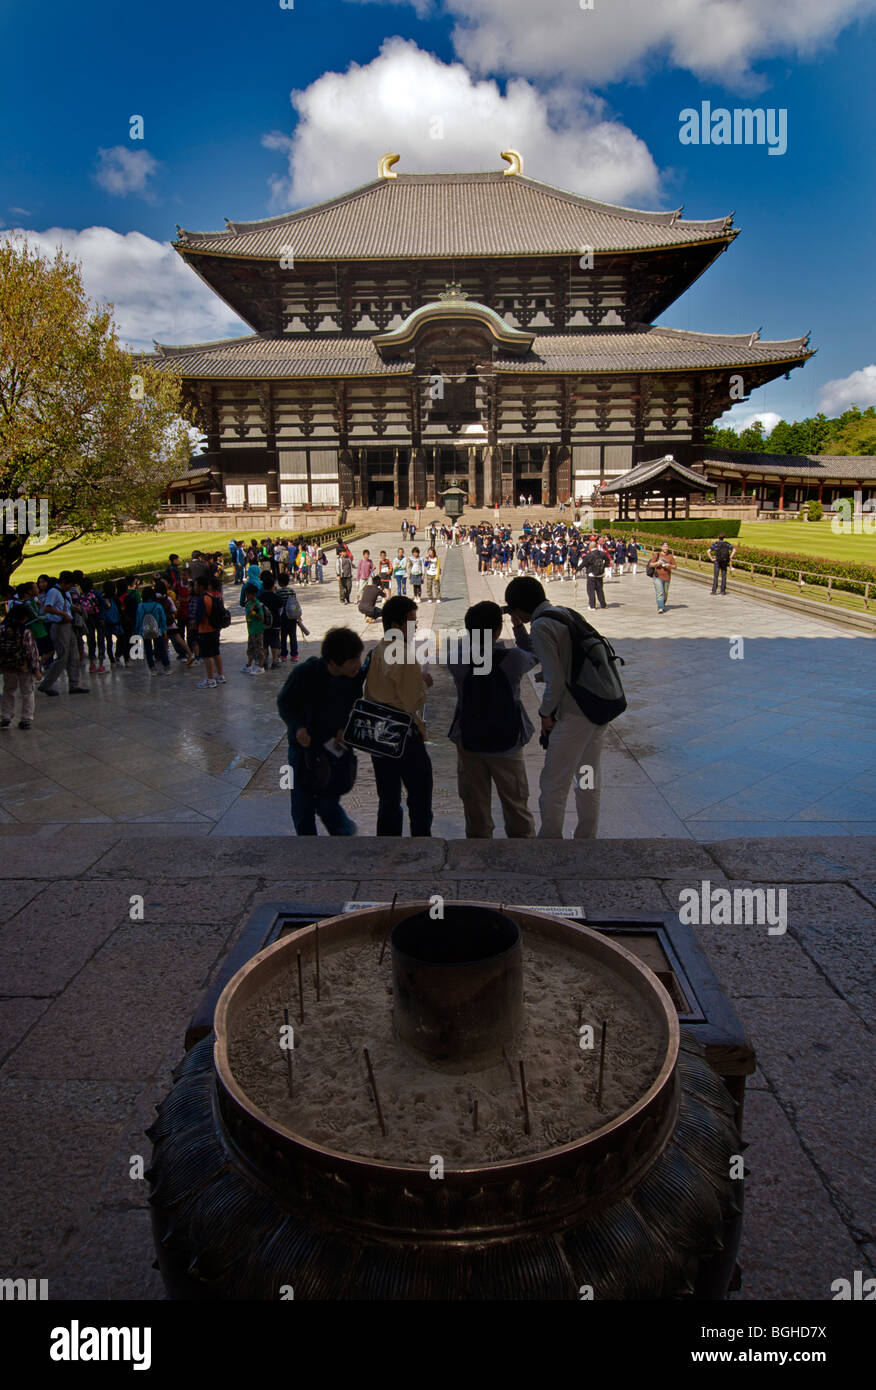 Todaiji temple, Nara, Japan - Stock Image